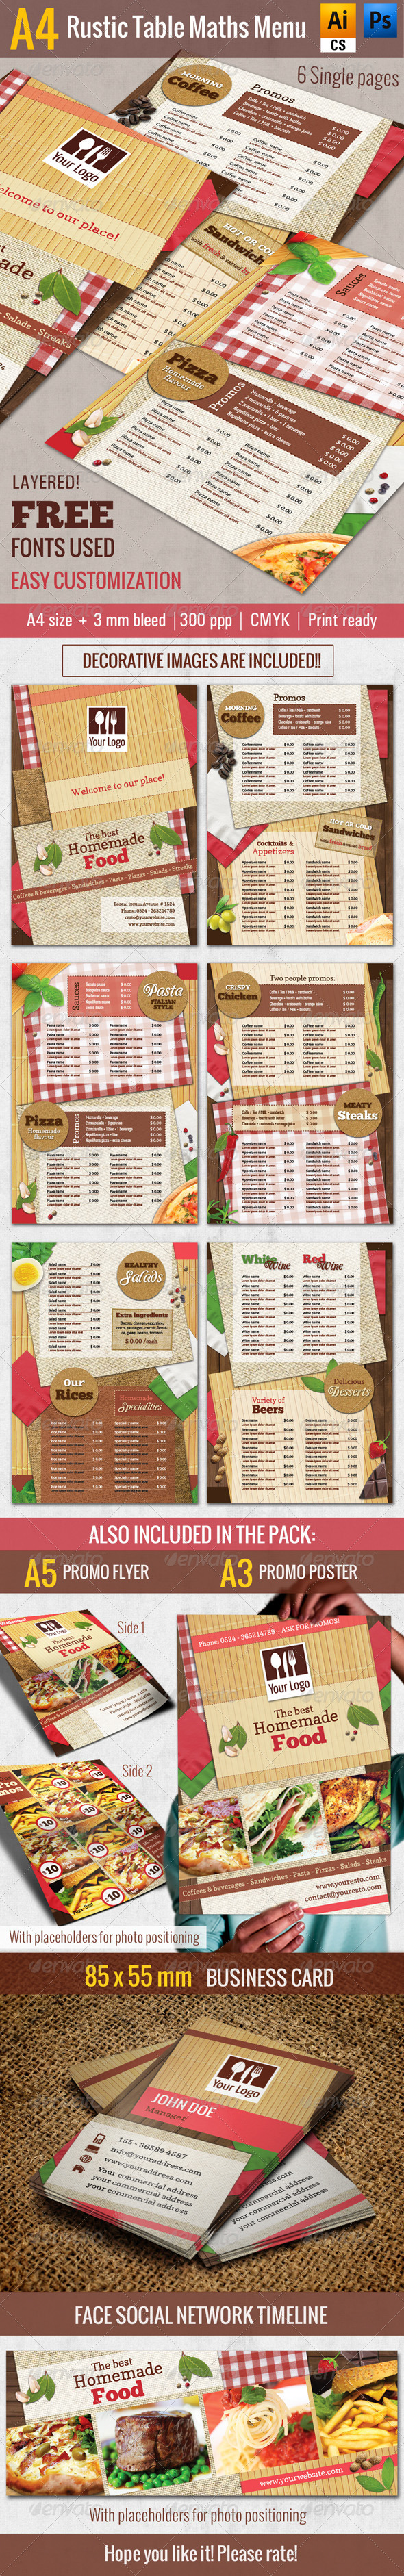 A4 Rustic Table Mats Menu - Restaurant Pack - Food Menus Print Templates